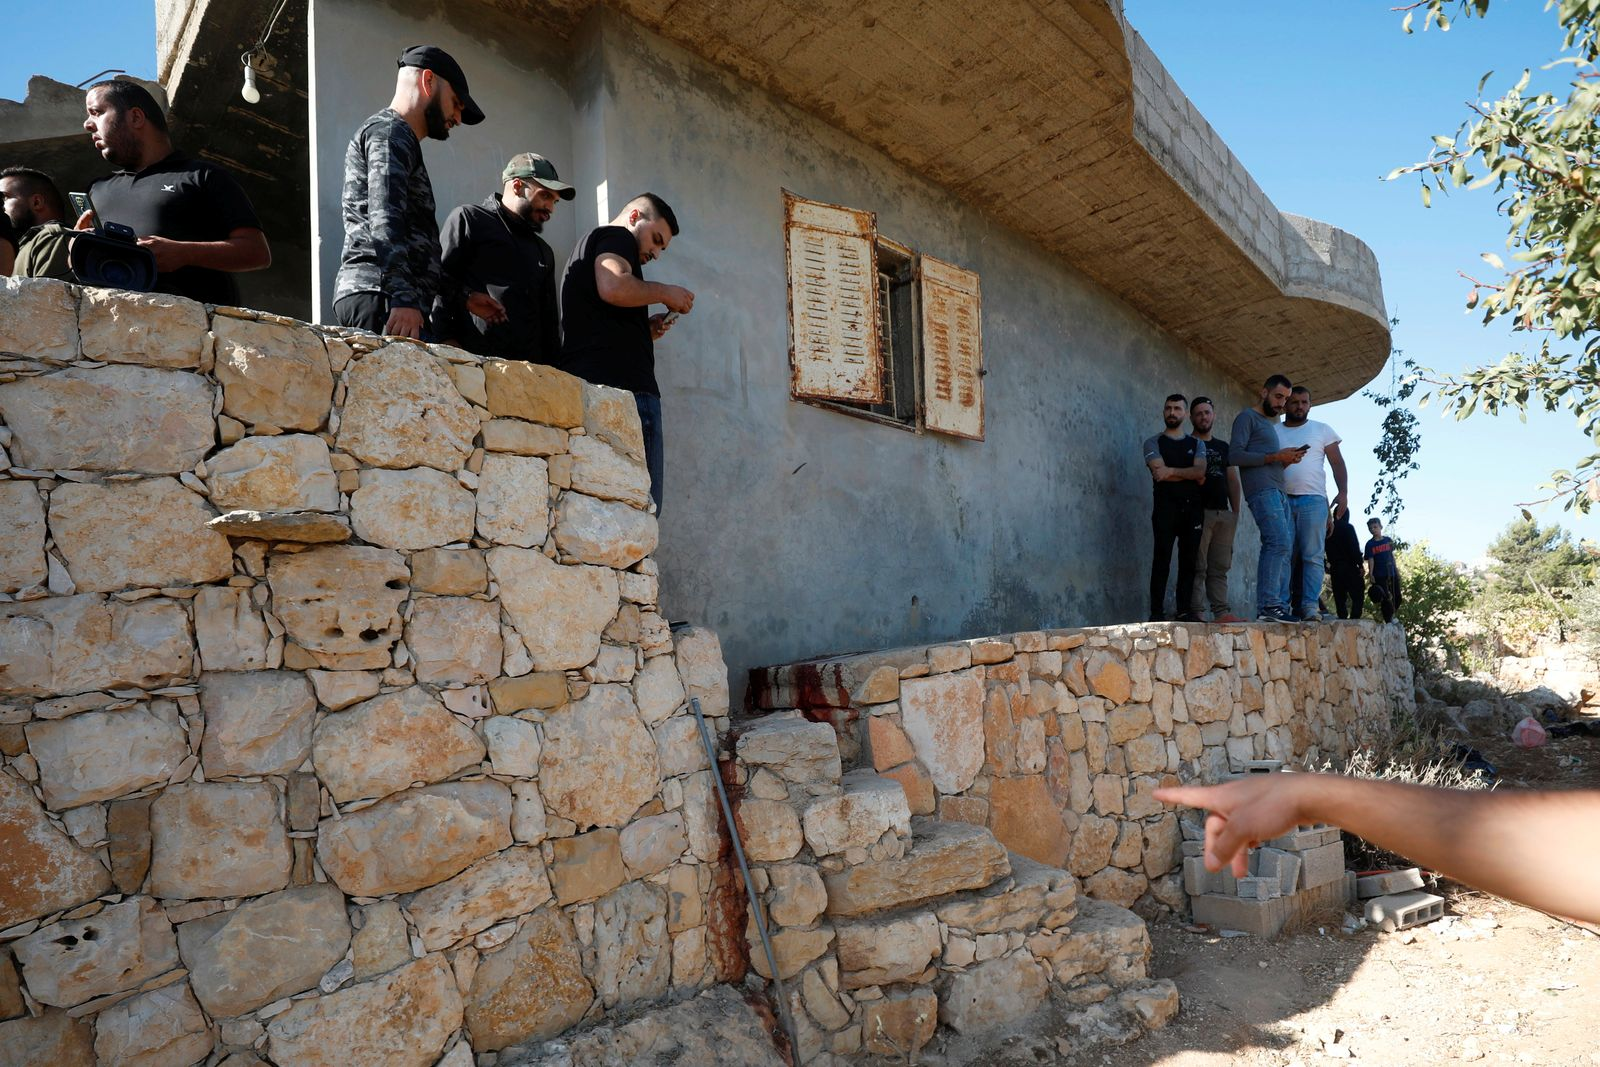 Scene where three Palestinians were killed by Israeli forces in West Bank